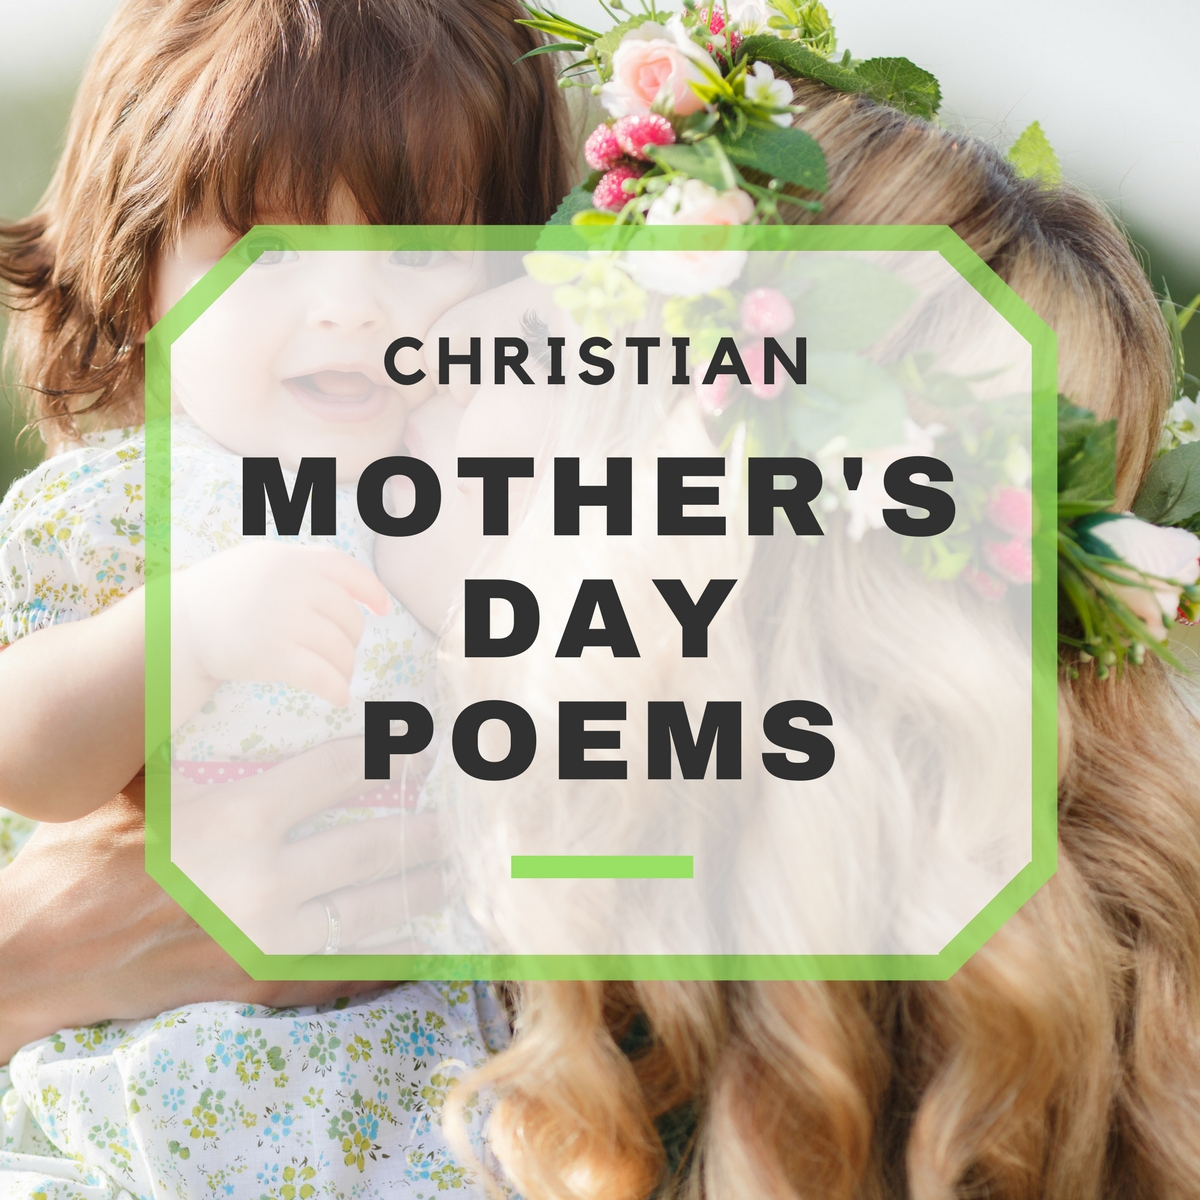 Christian Mothers Day Poems